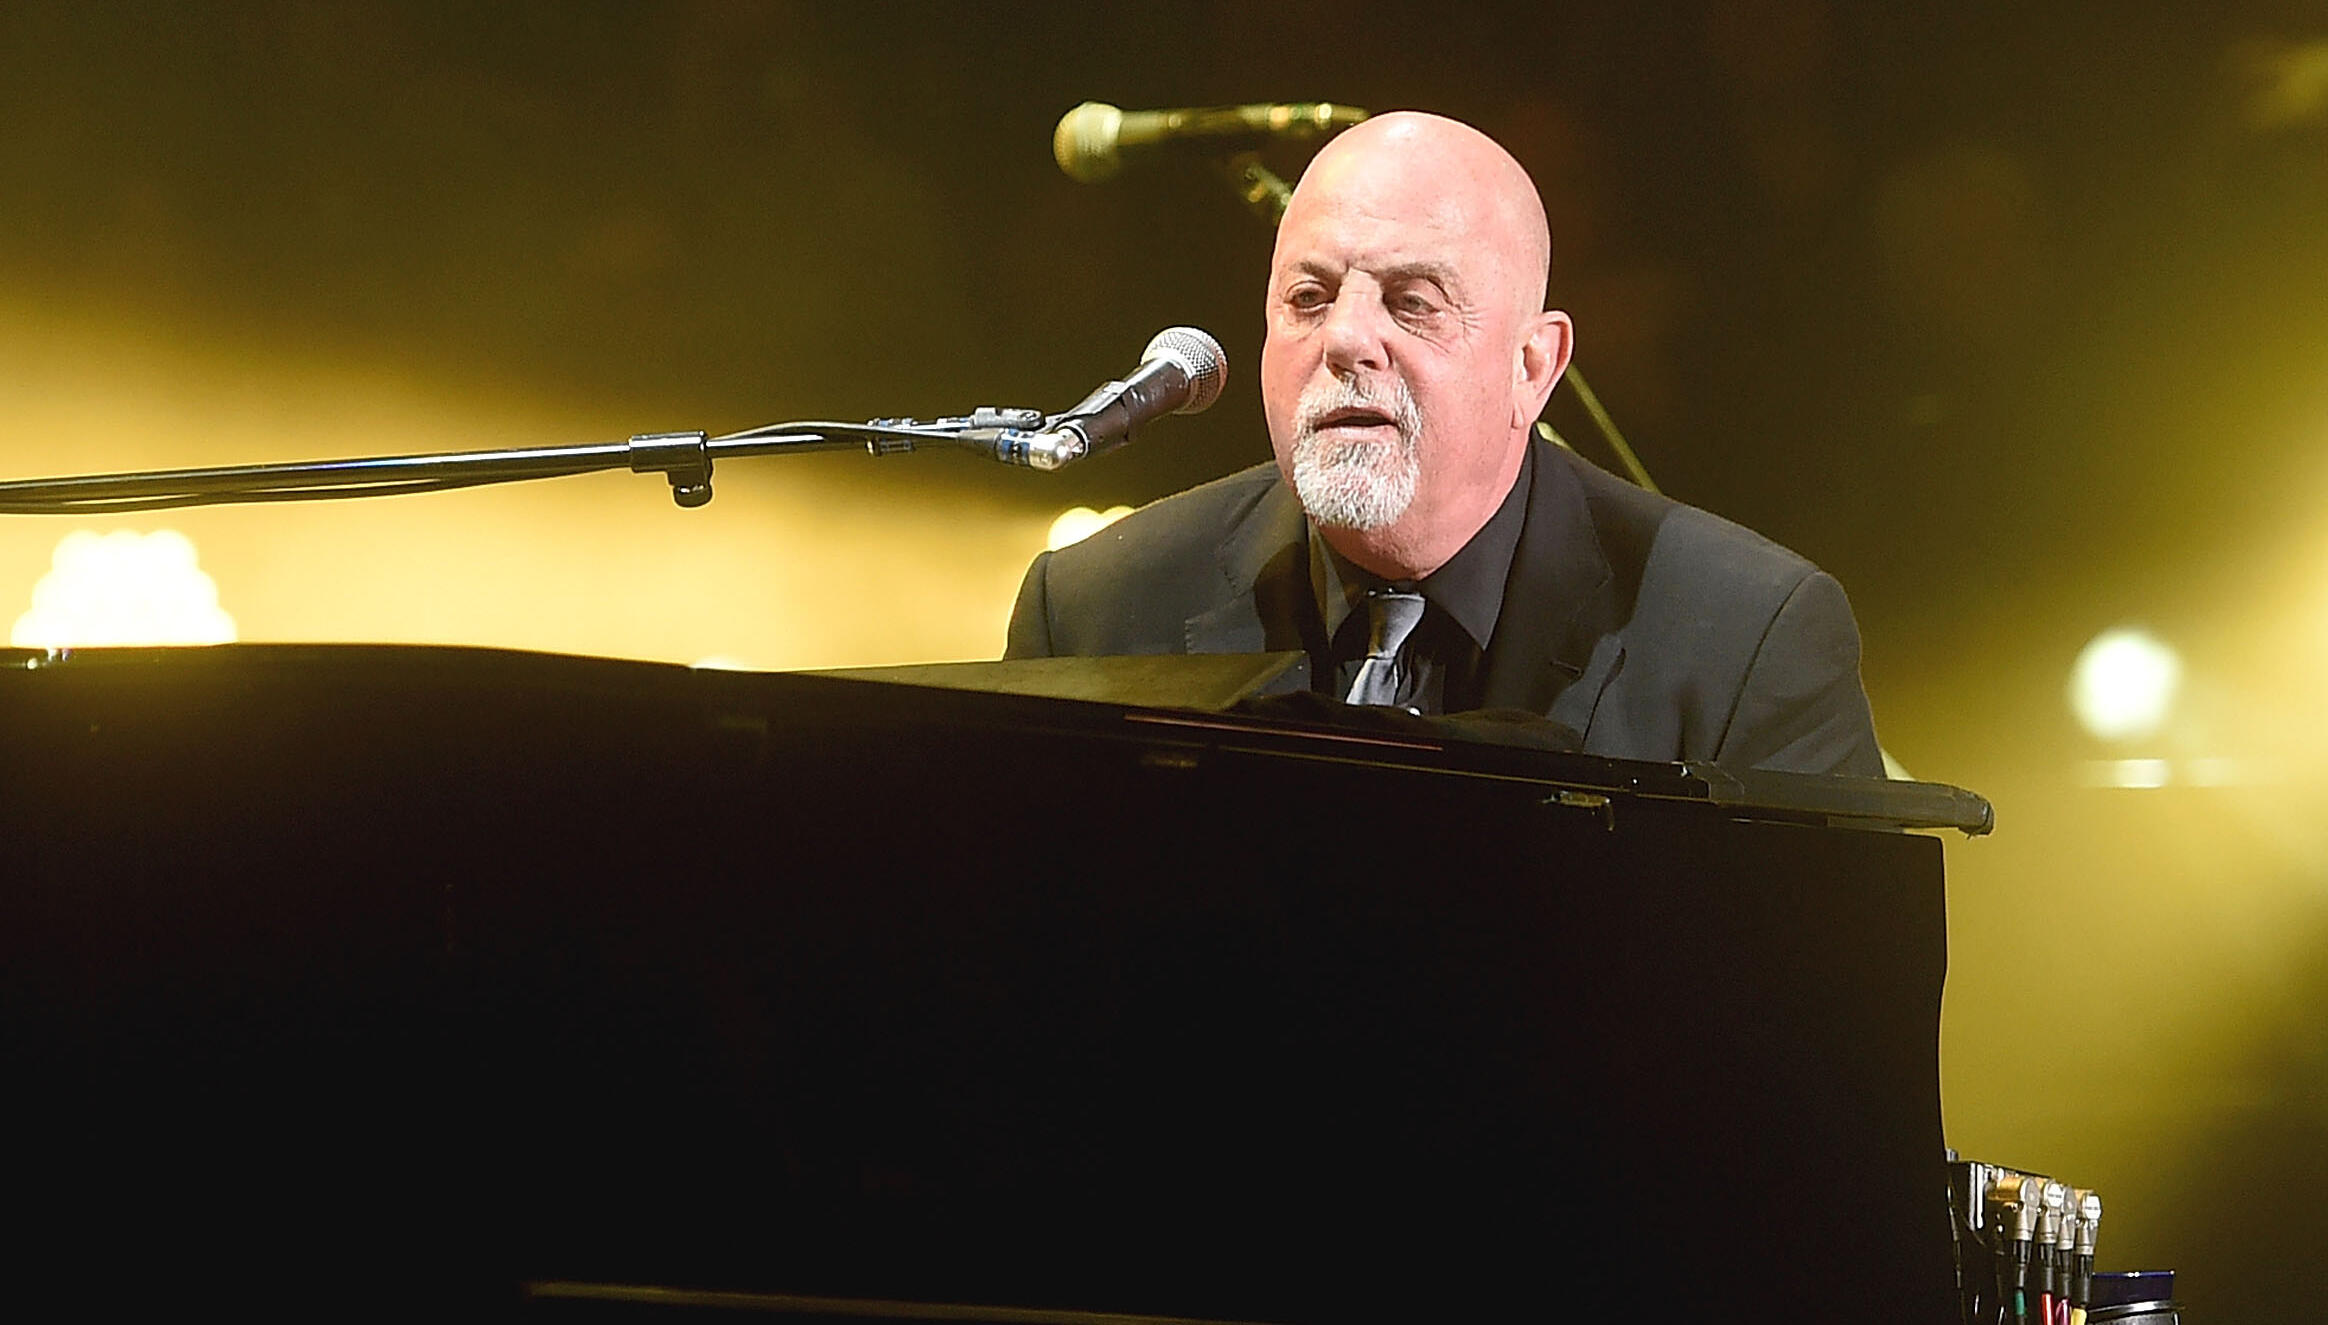 Billy Joel's Neighbors Concerned About Manure Smell From Proposed Stable | iHeartRadio